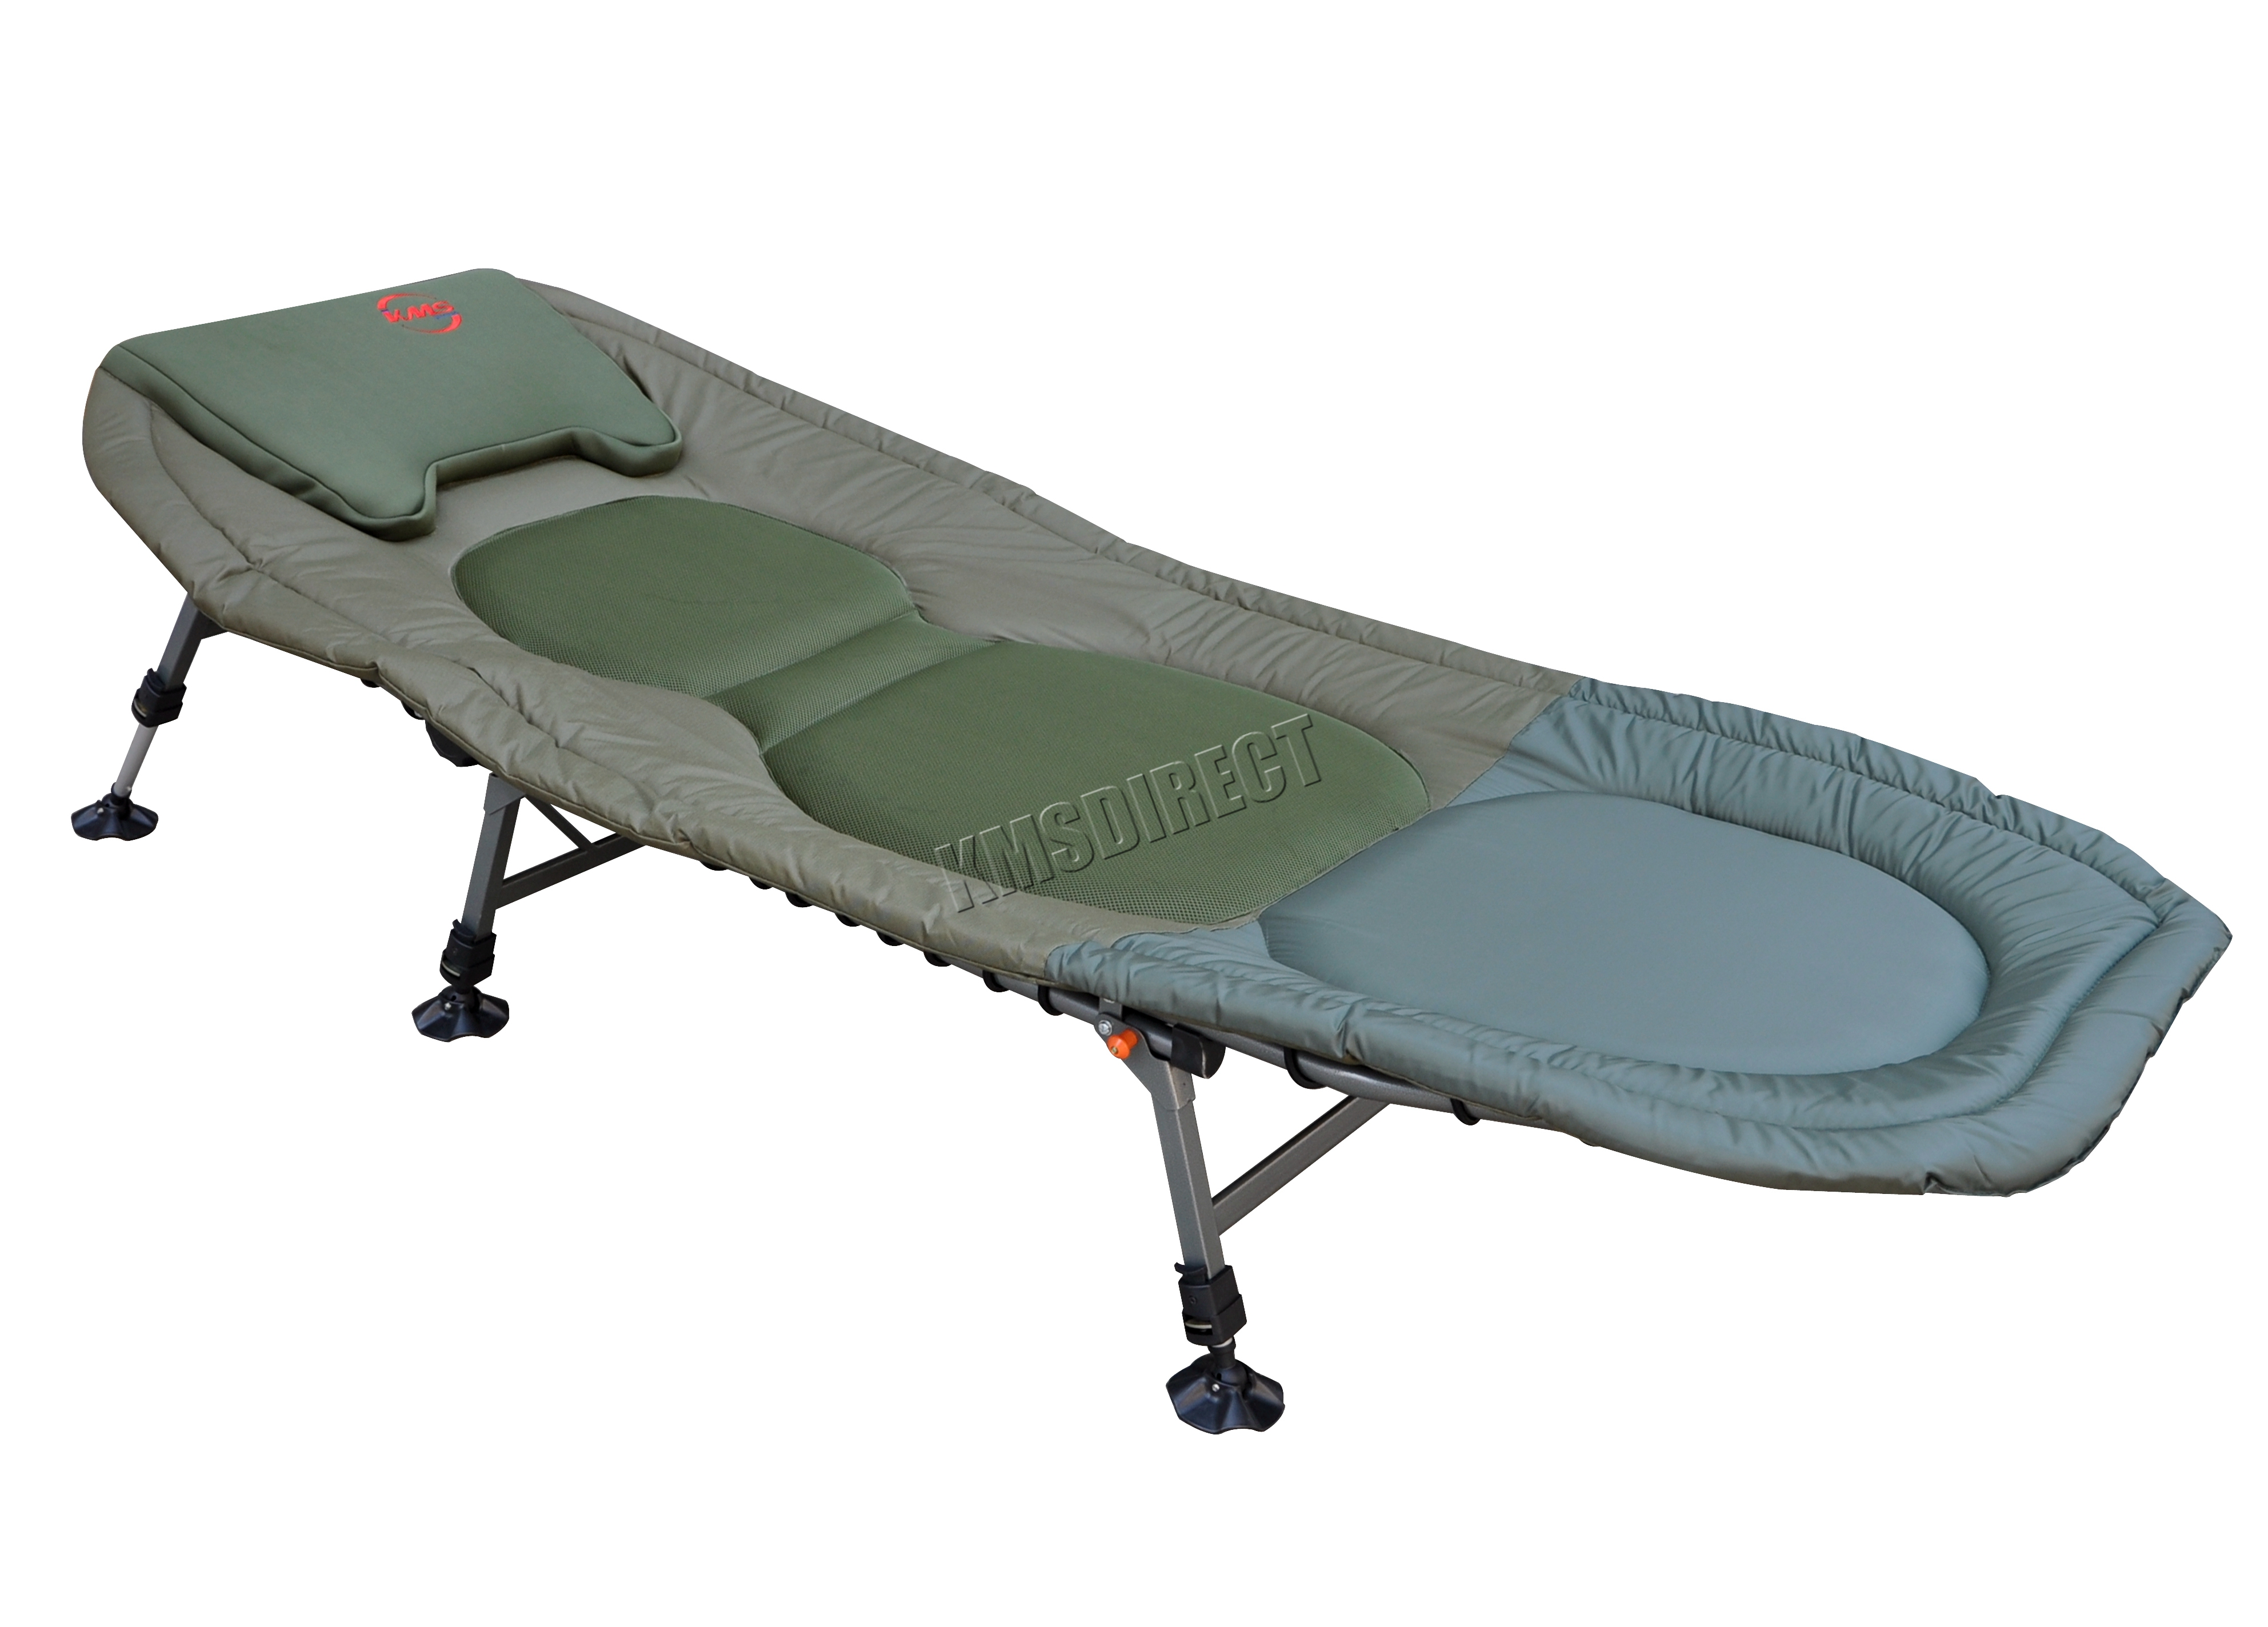 fishing chair bed reviews inflatable canadian tire portable carp bedchair camping 6